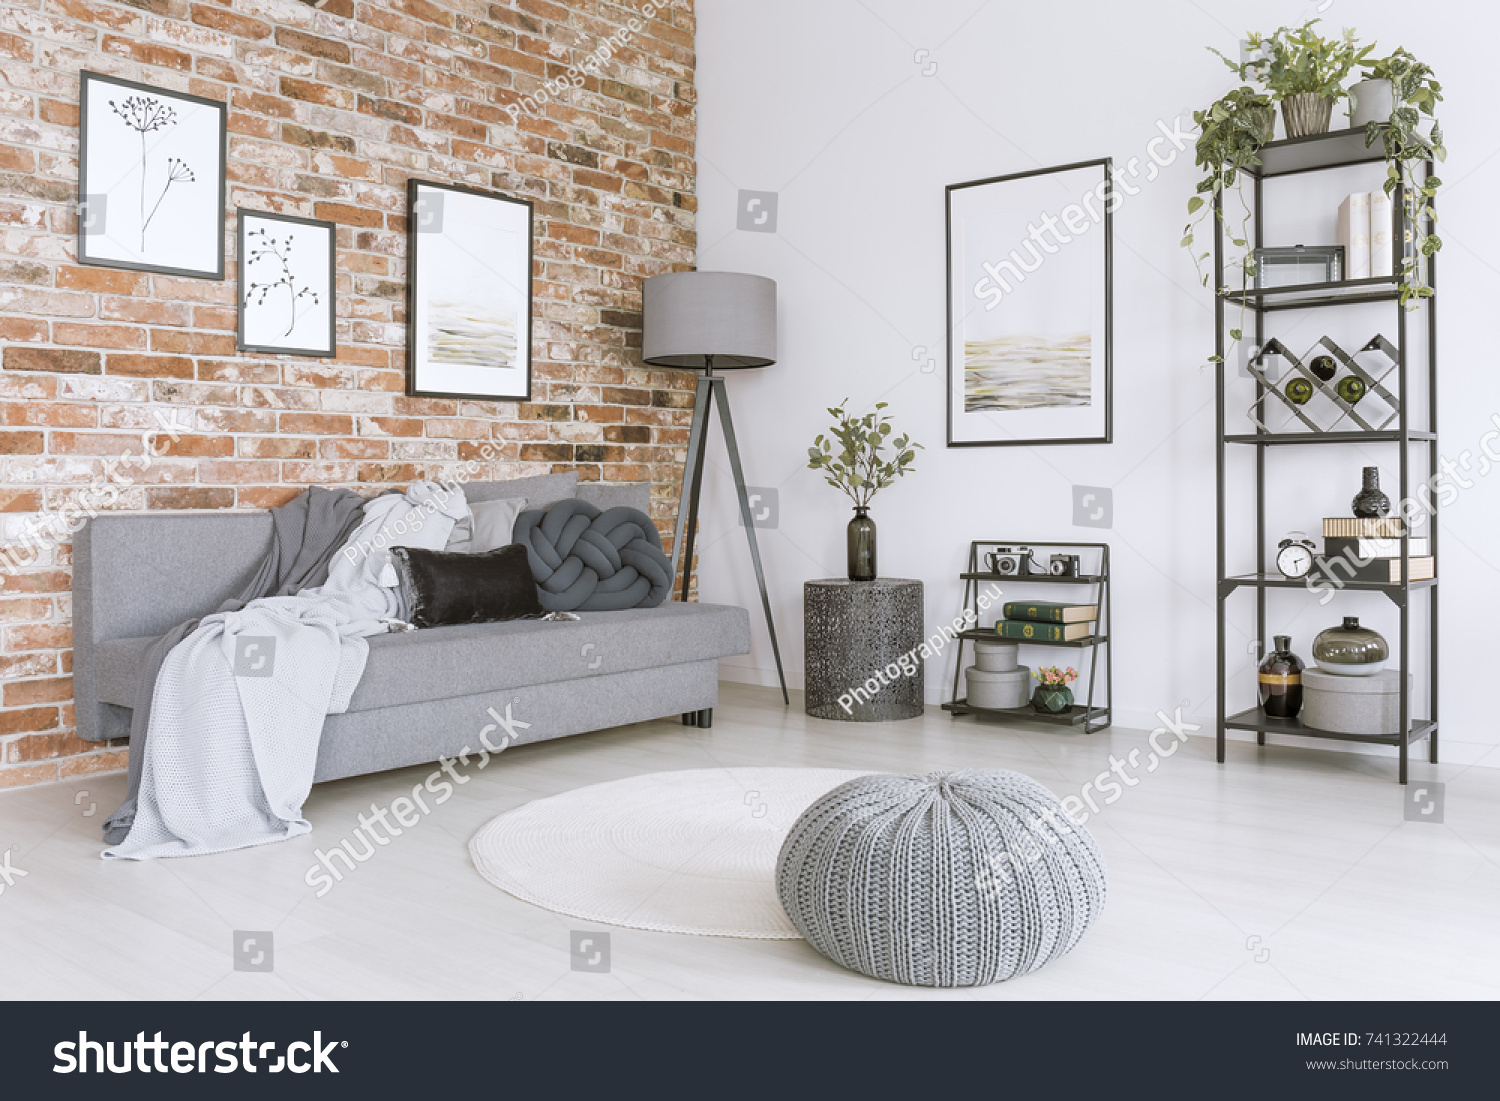 White Gray Living Room Knit Pouf Stock Photo (Royalty Free ...